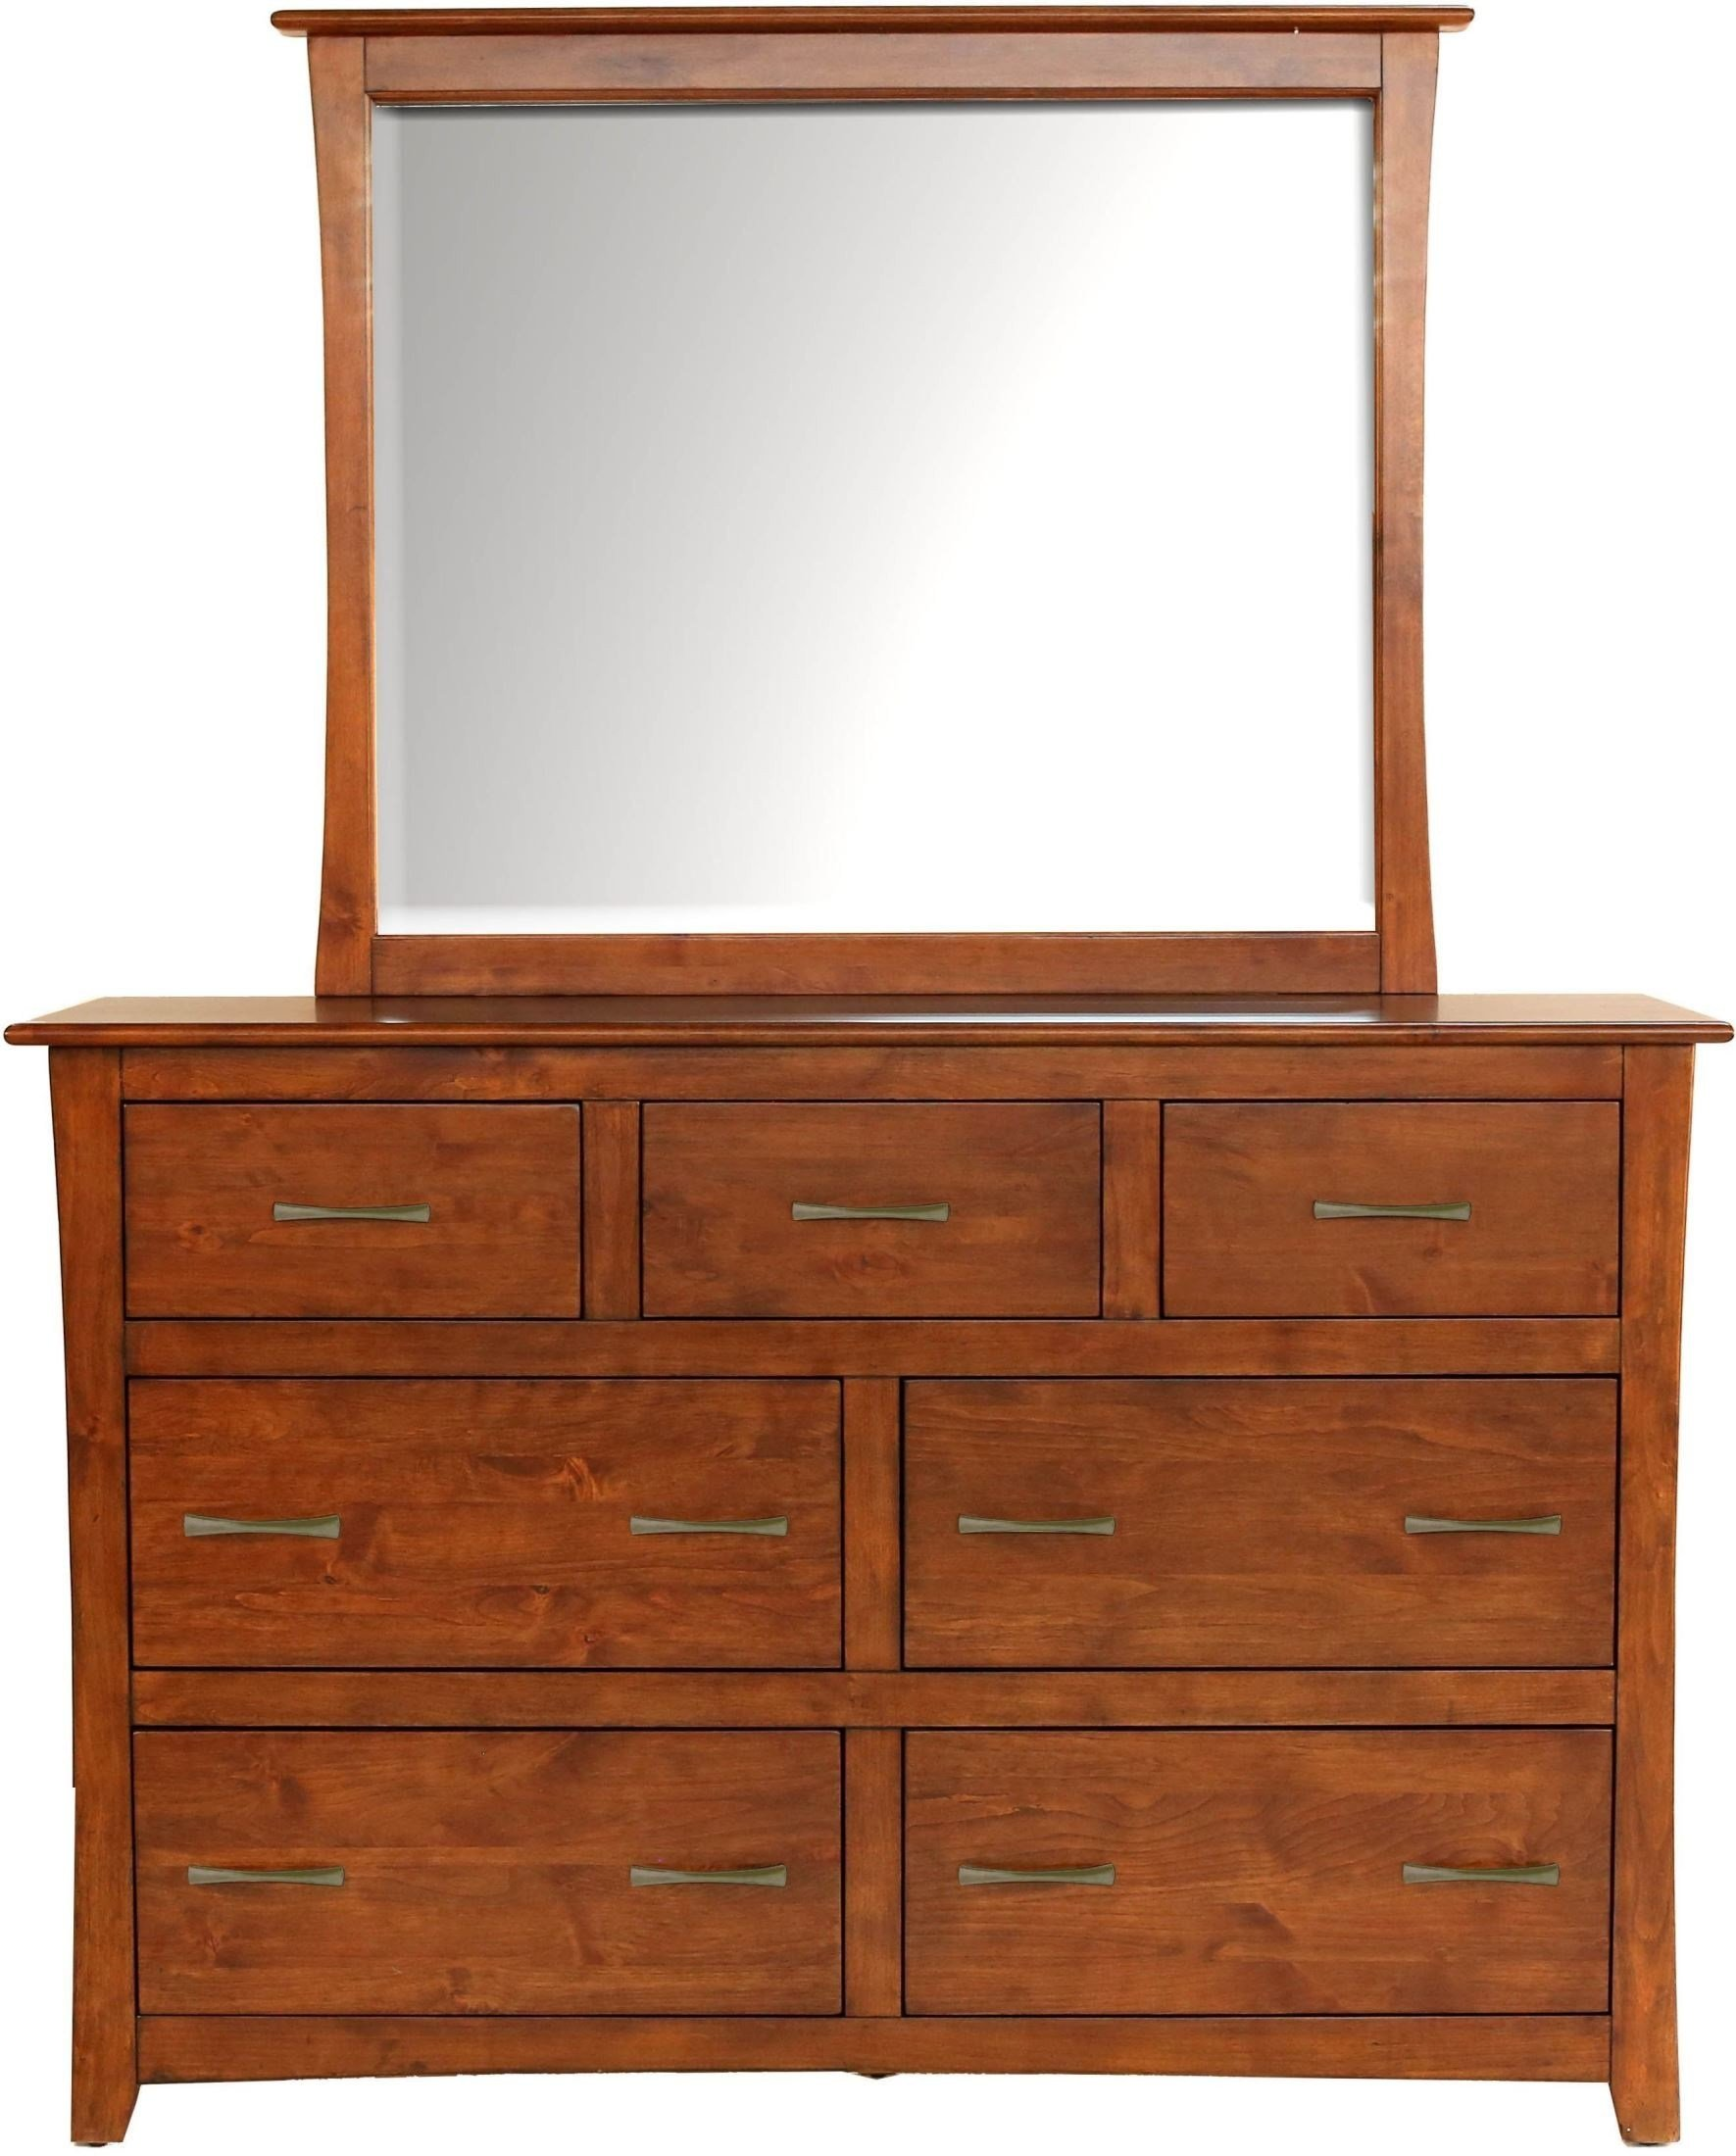 Best Grant Park Pecan Storage Bedroom Set Gpkpe5031 A America With Pictures